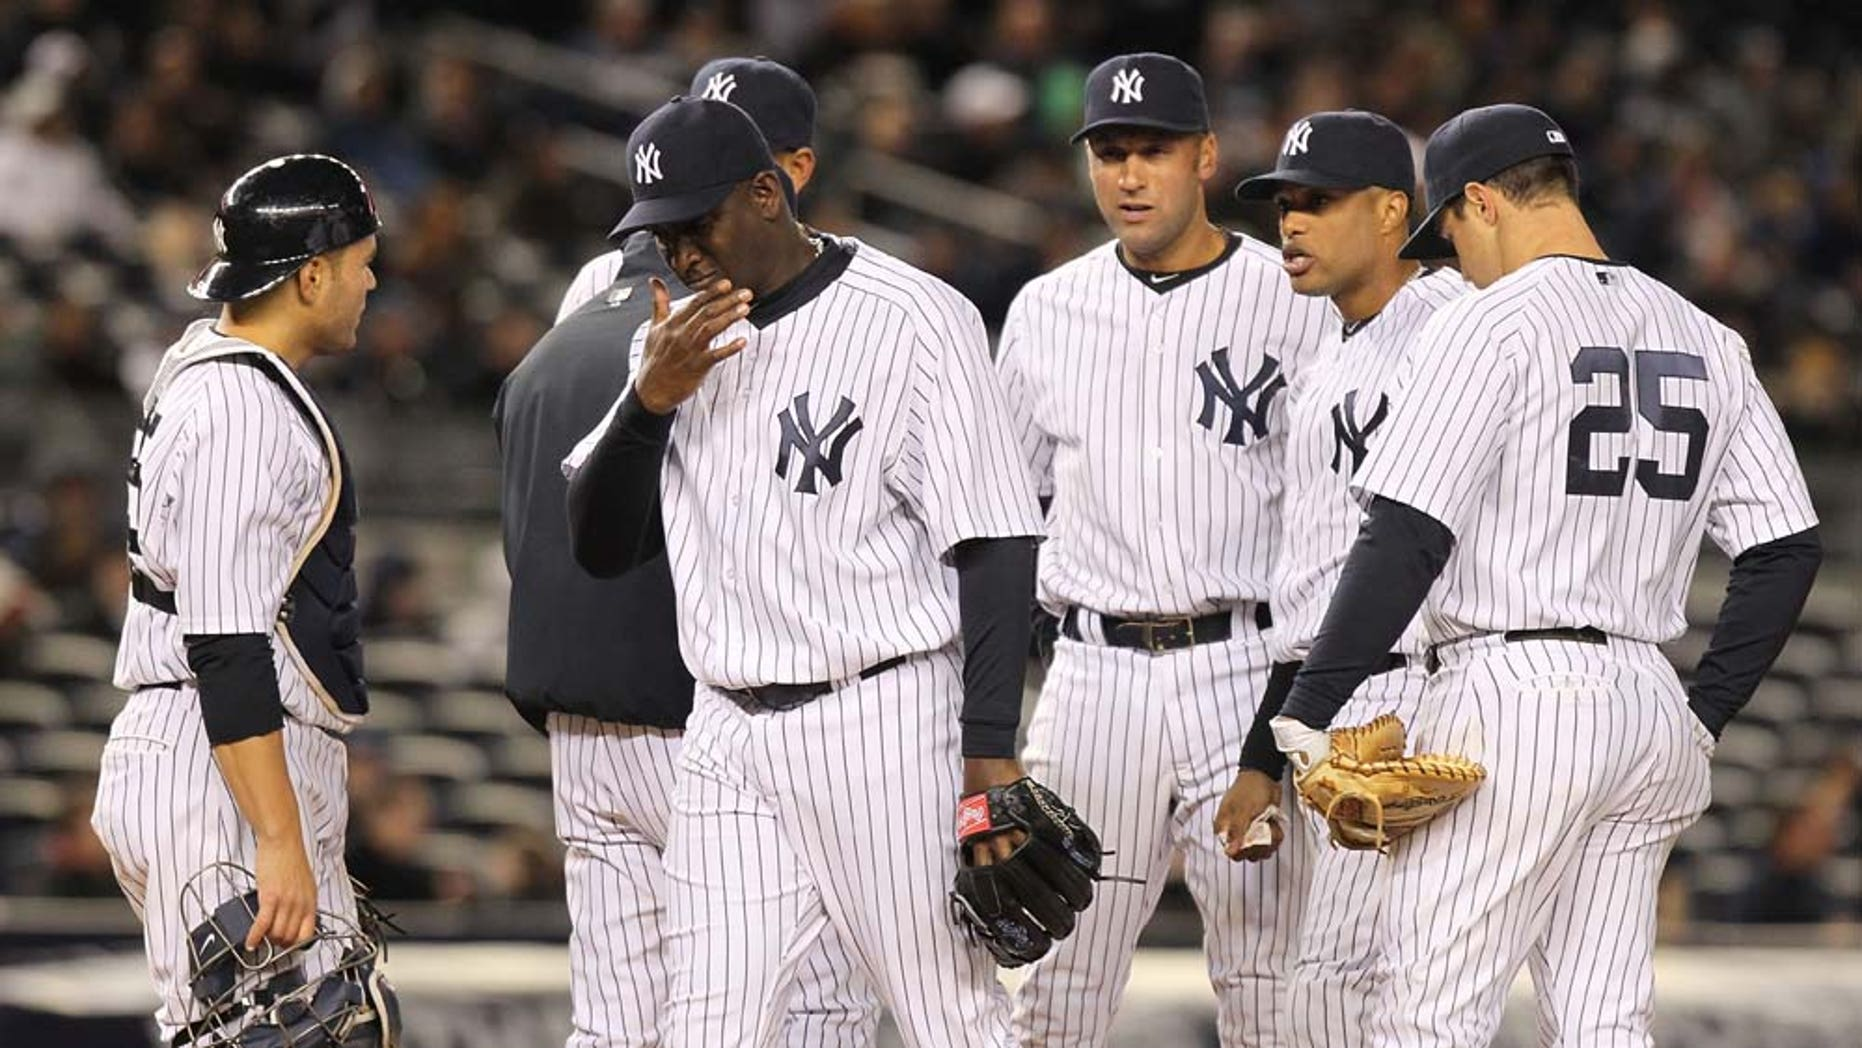 NEW YORK, NY - APRIL 05:  Rafael Soriano #29 of the New York Yankees is pulled from the game in the eighth inning after loading the bases against the Minnesota Twins at Yankee Stadium on April 5, 2011 in the Bronx borough of New York City.  (Photo by Nick Laham/Getty Images)